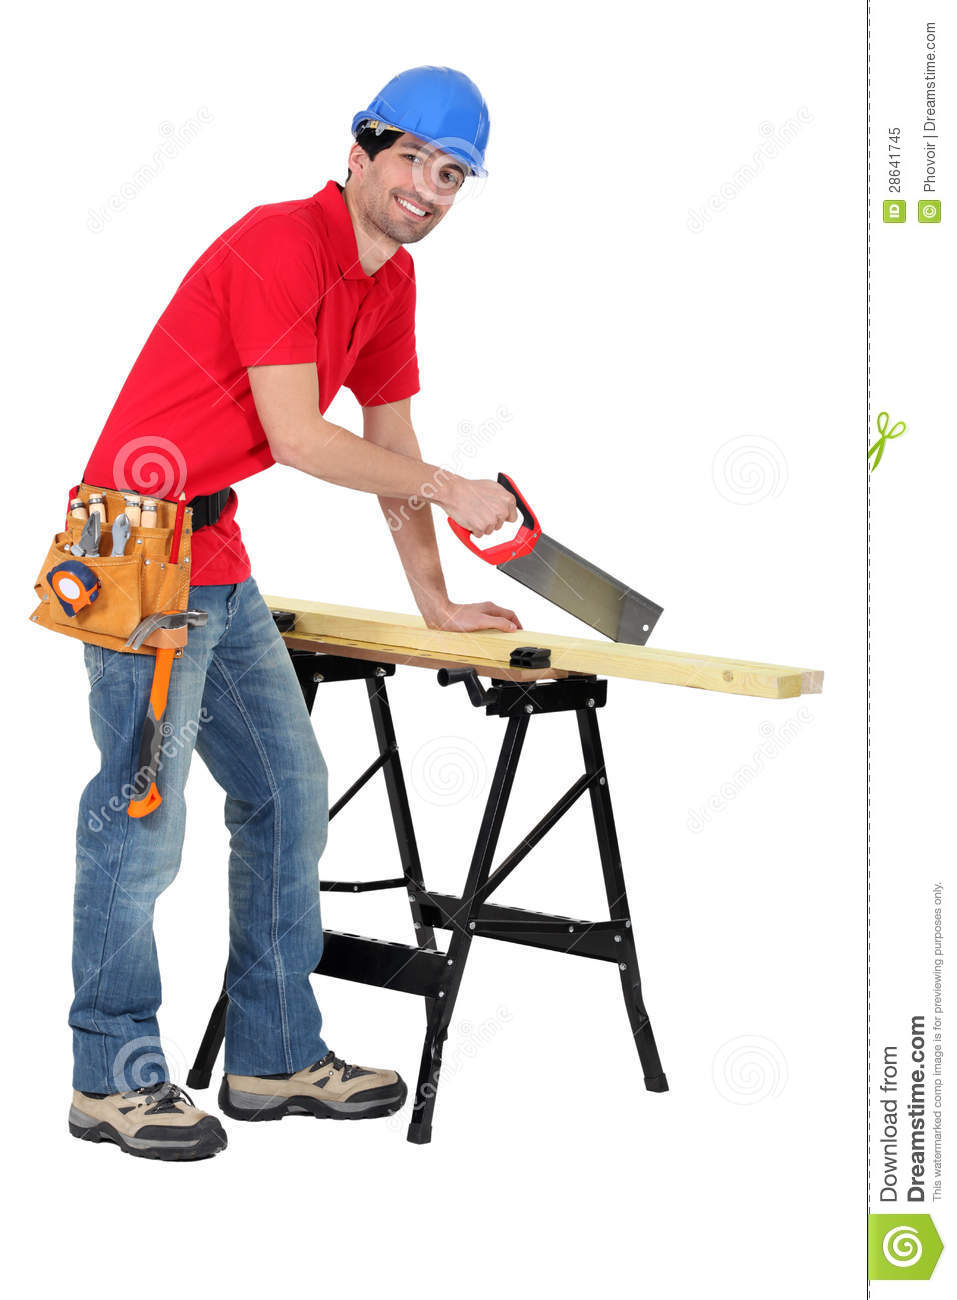 carpenter sawing stock image image of blade  background free march clip art border free march clip art border